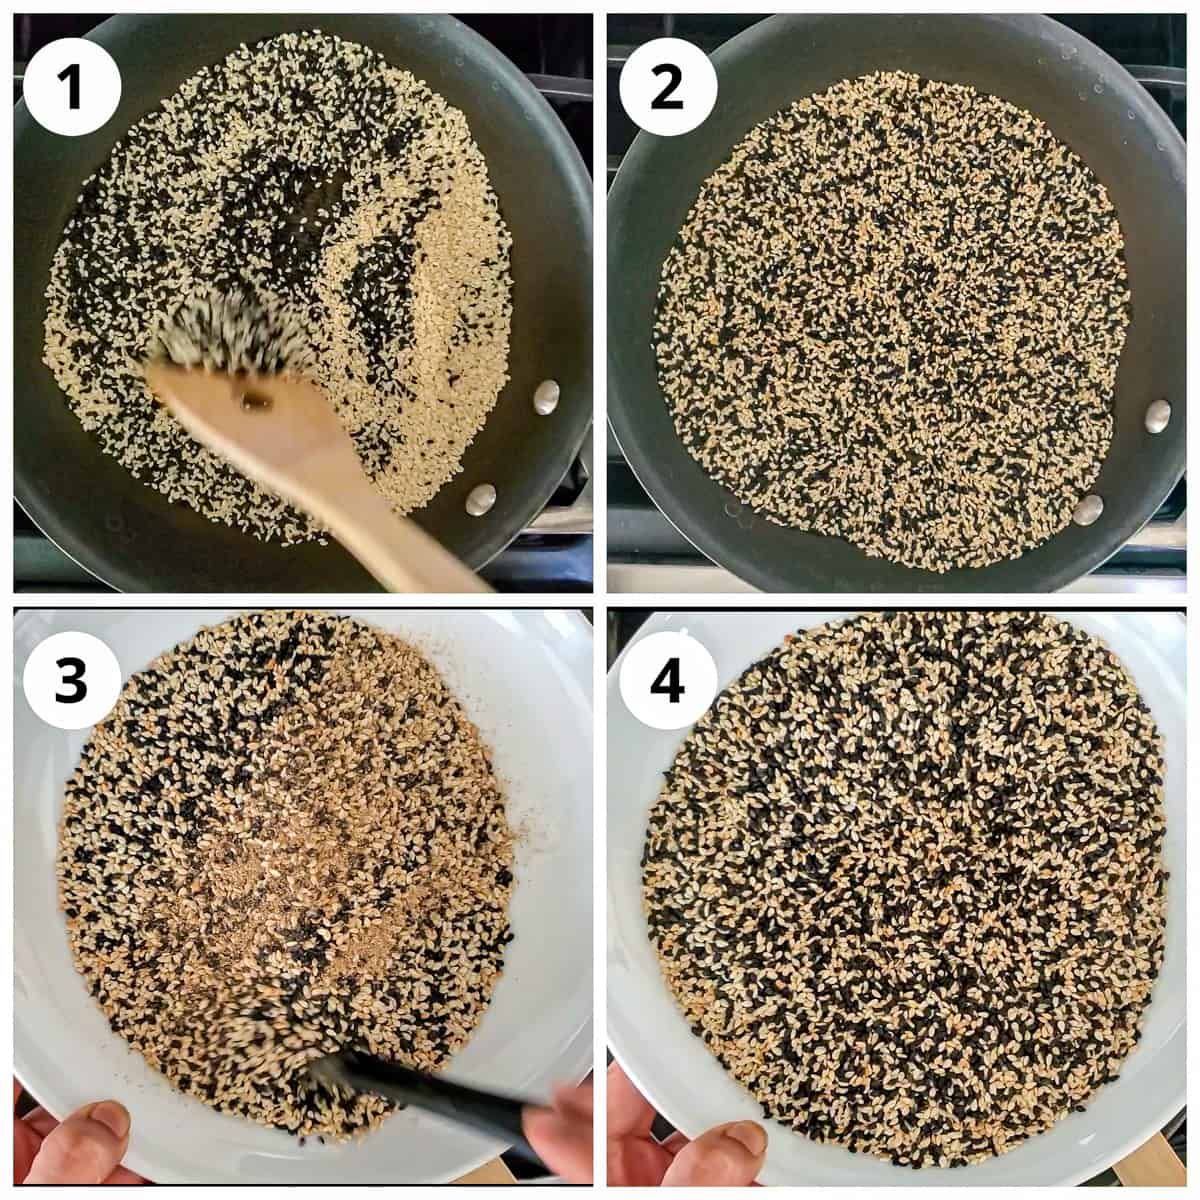 Roasting sesame seeds in a black pan for til chikki